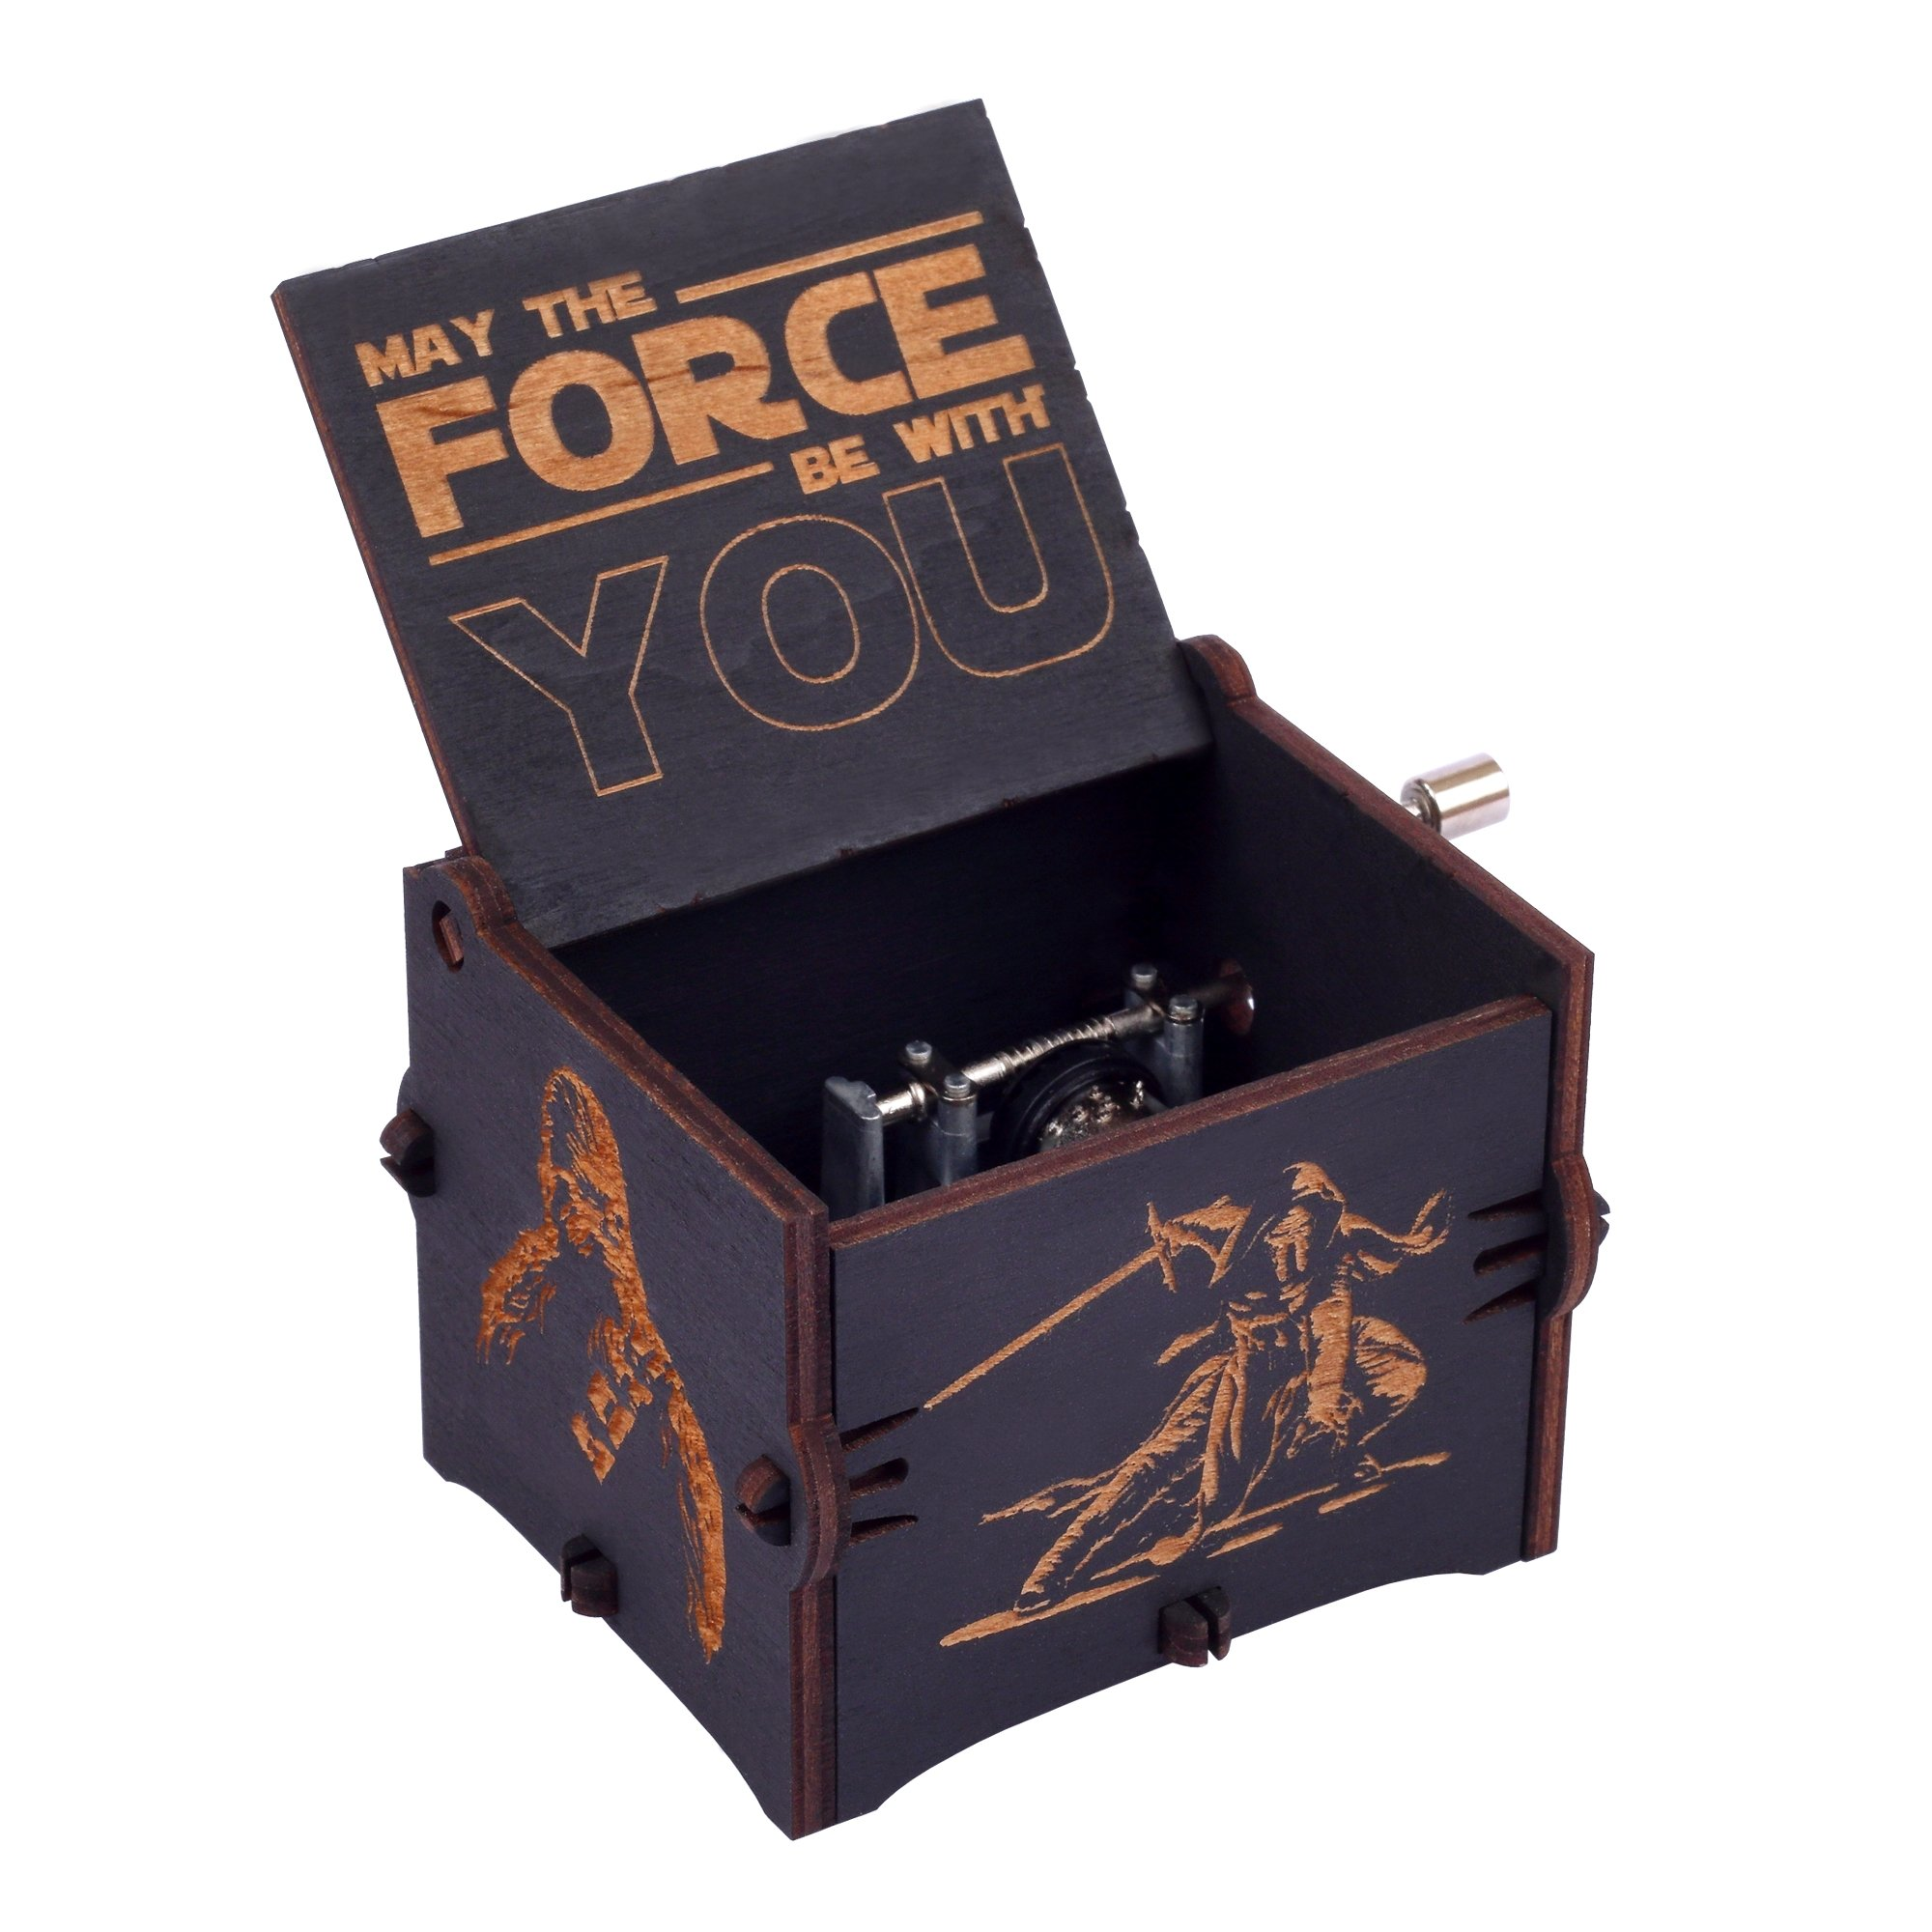 Enjoy The Wood Star Wars Music Box Wooden Star Wars Custom Gift for Boyfriend Gift for Brother